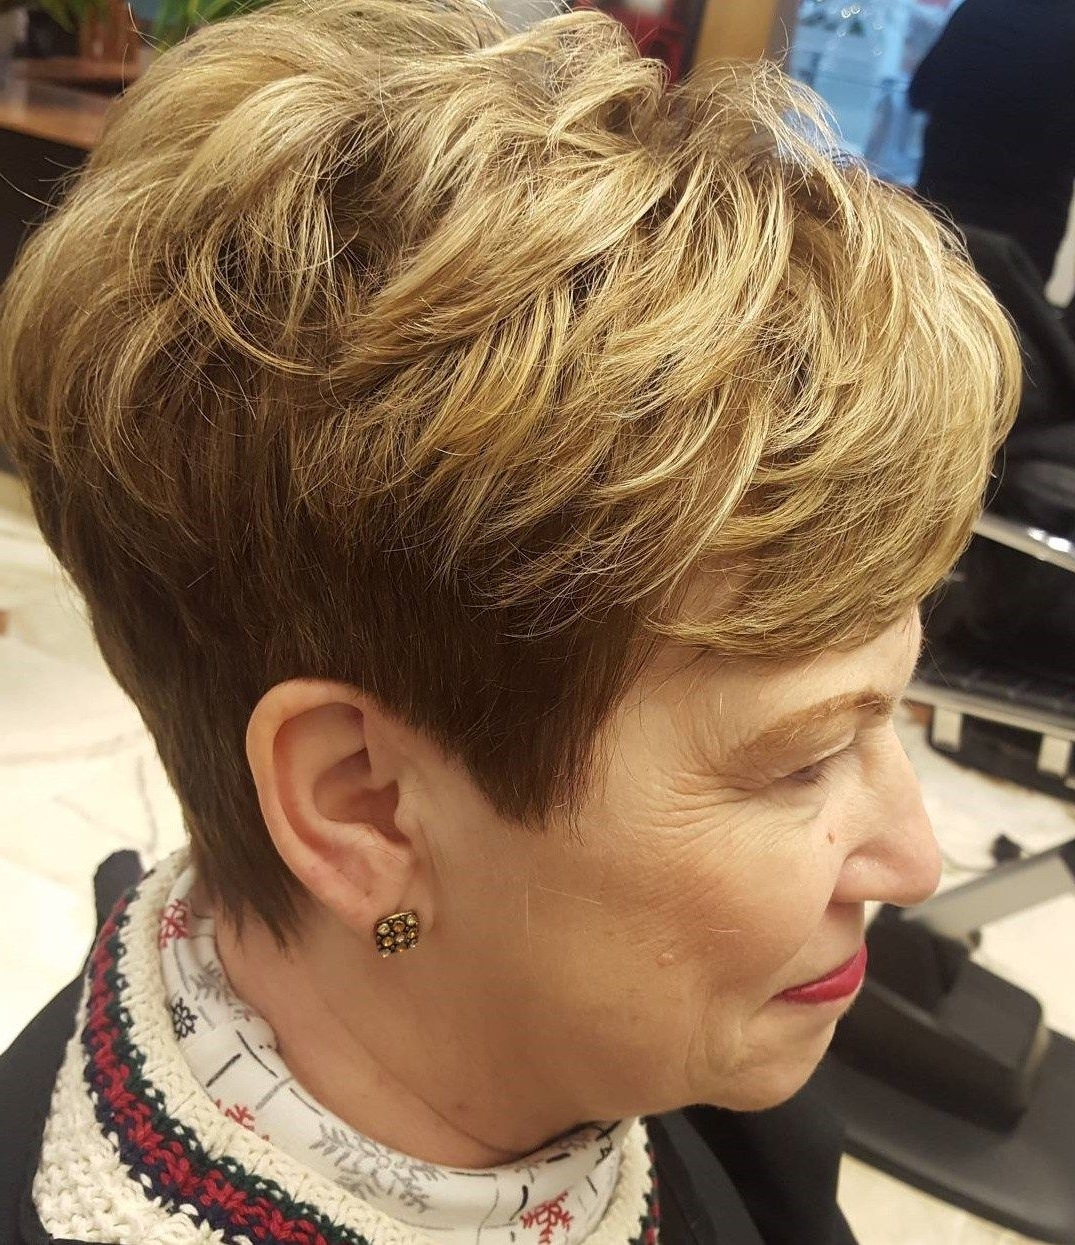 Pinterest In Well Known Two Tone Pixie Hairstyles (View 16 of 20)